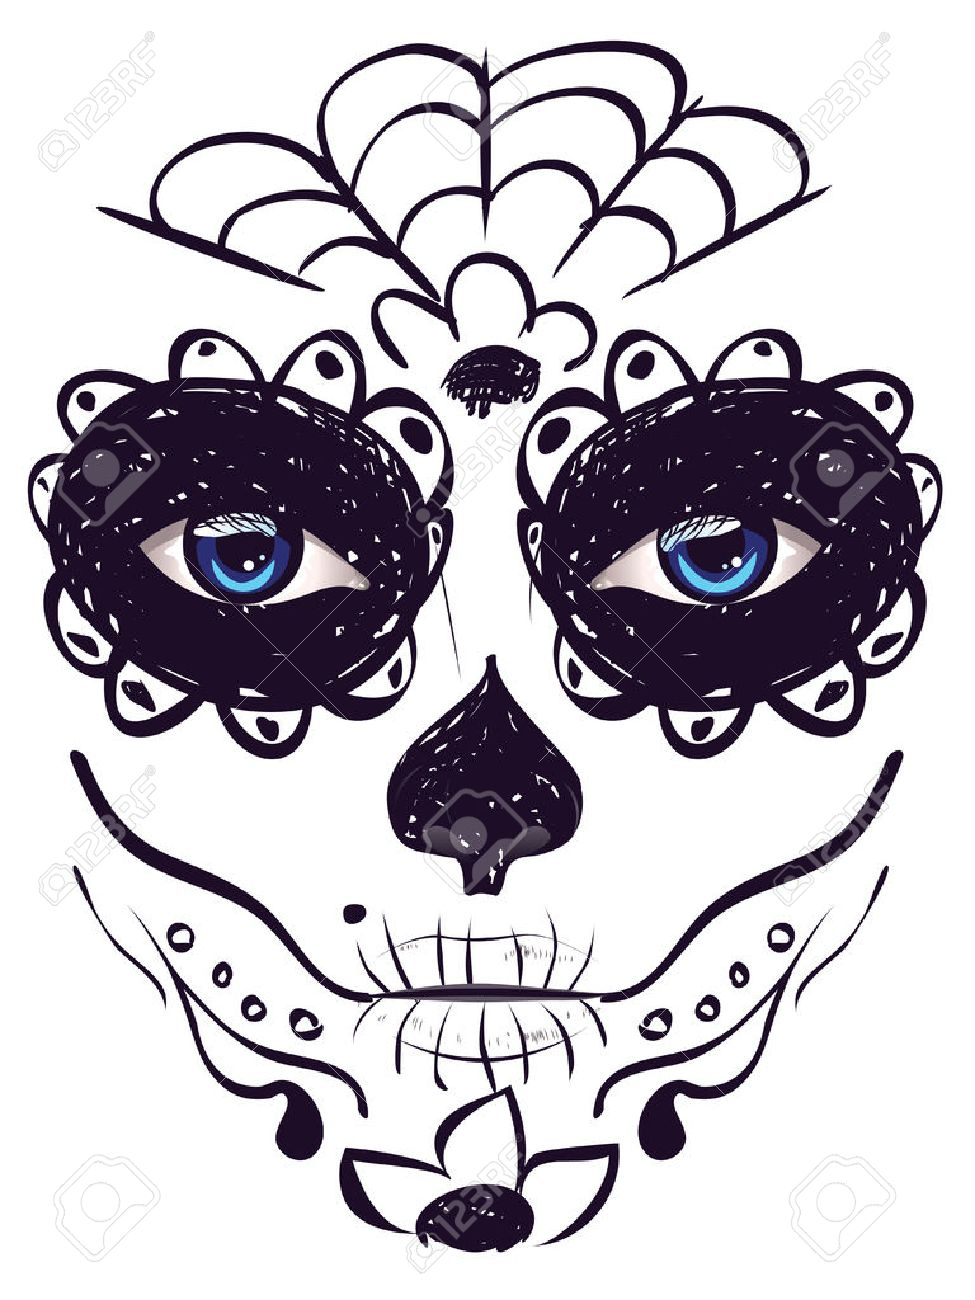 14804 Day Of The Dead Cliparts Stock Vector And Royalty Free Day